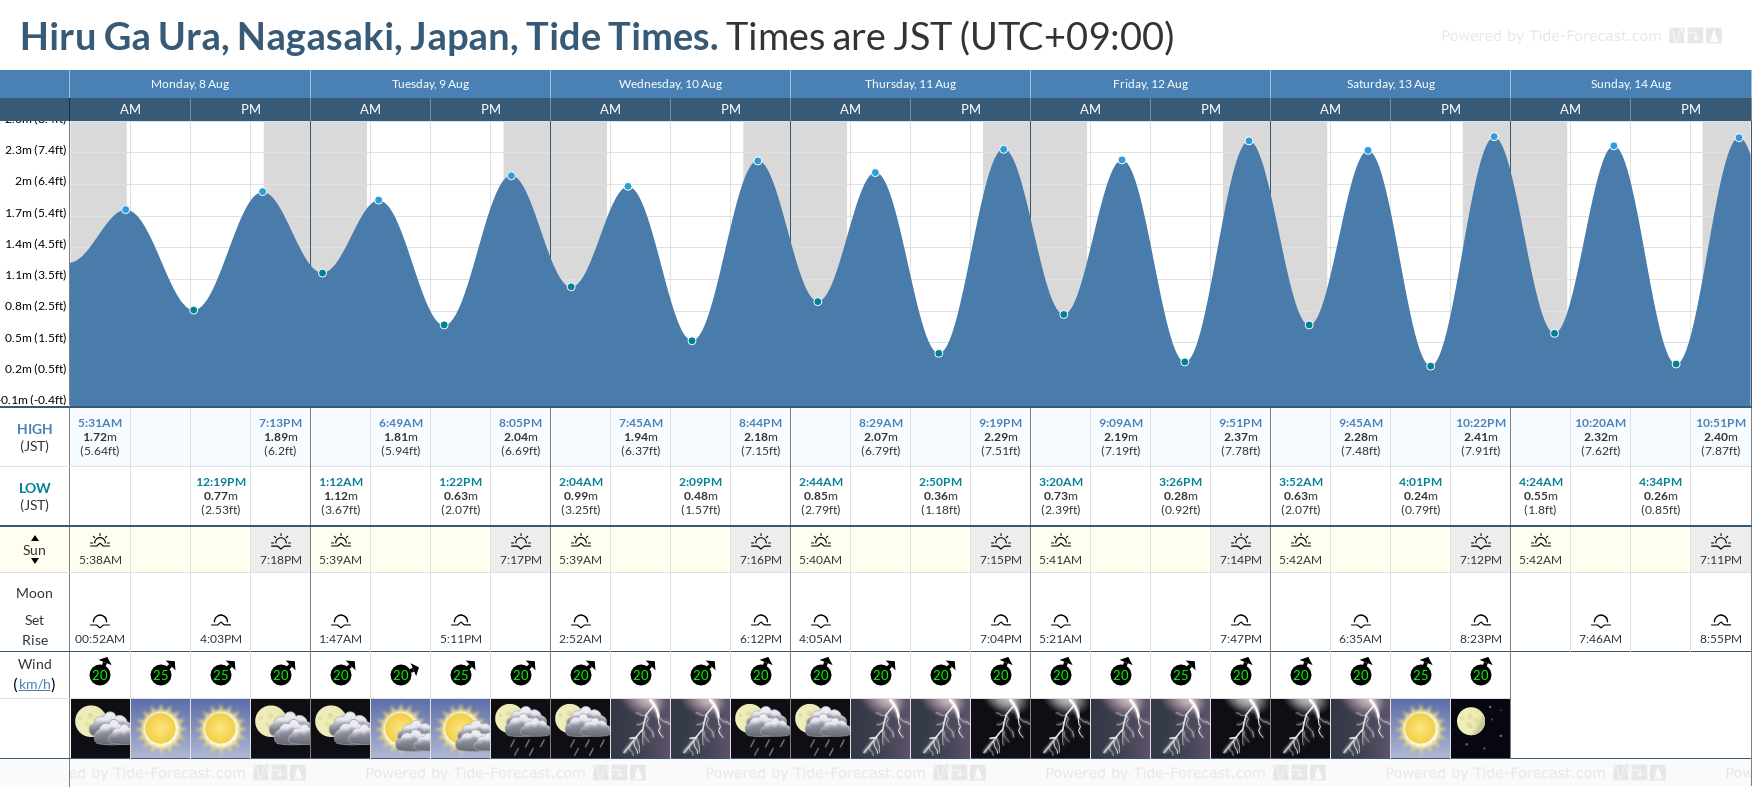 Hiru Ga Ura, Nagasaki, Japan Tide Chart including high and low tide tide times for the next 7 days